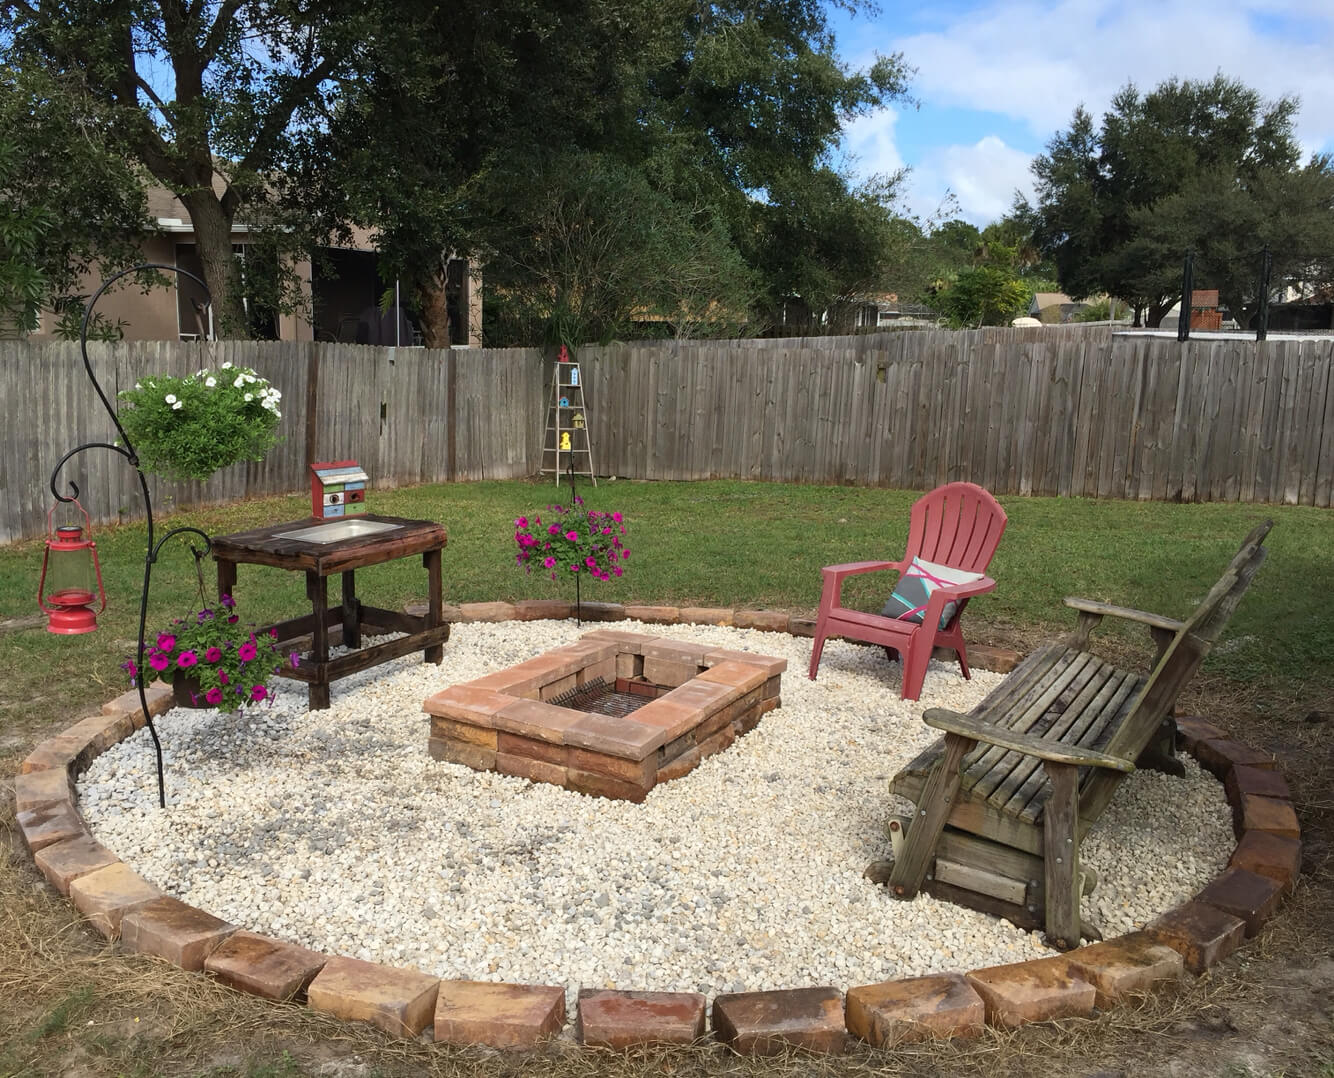 A Stone Grilling Pit for your Backyard